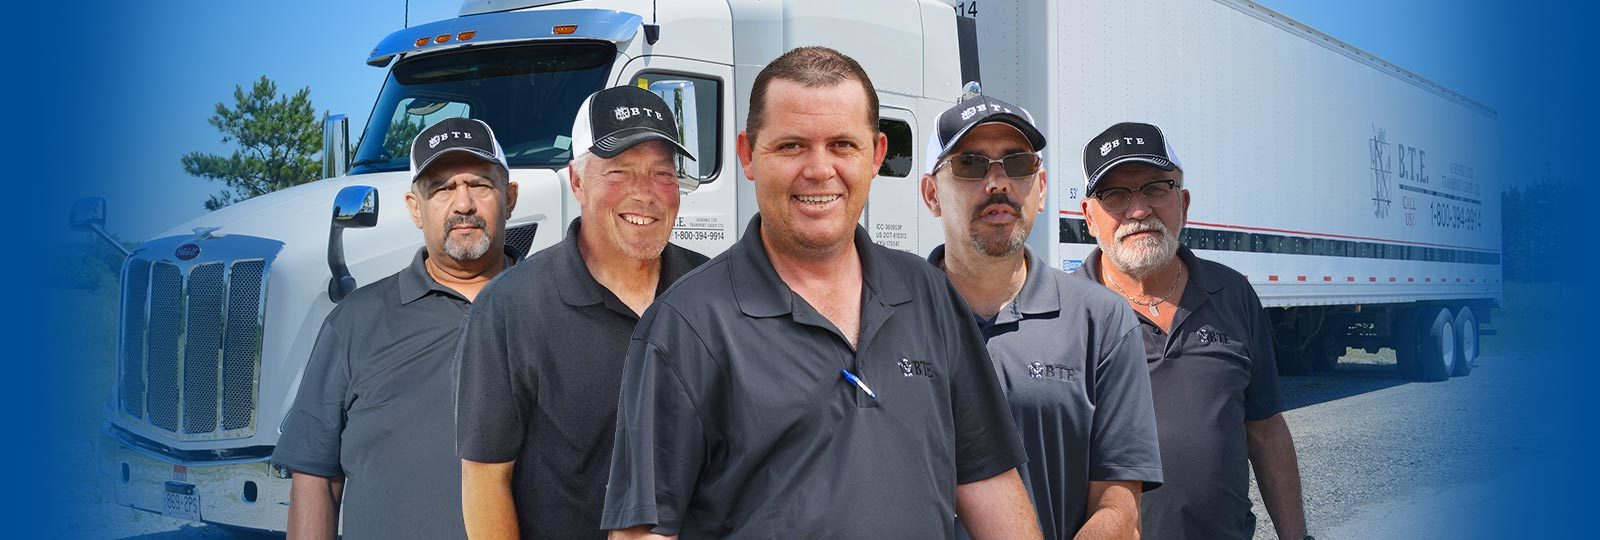 Our Happy Truck Drivers